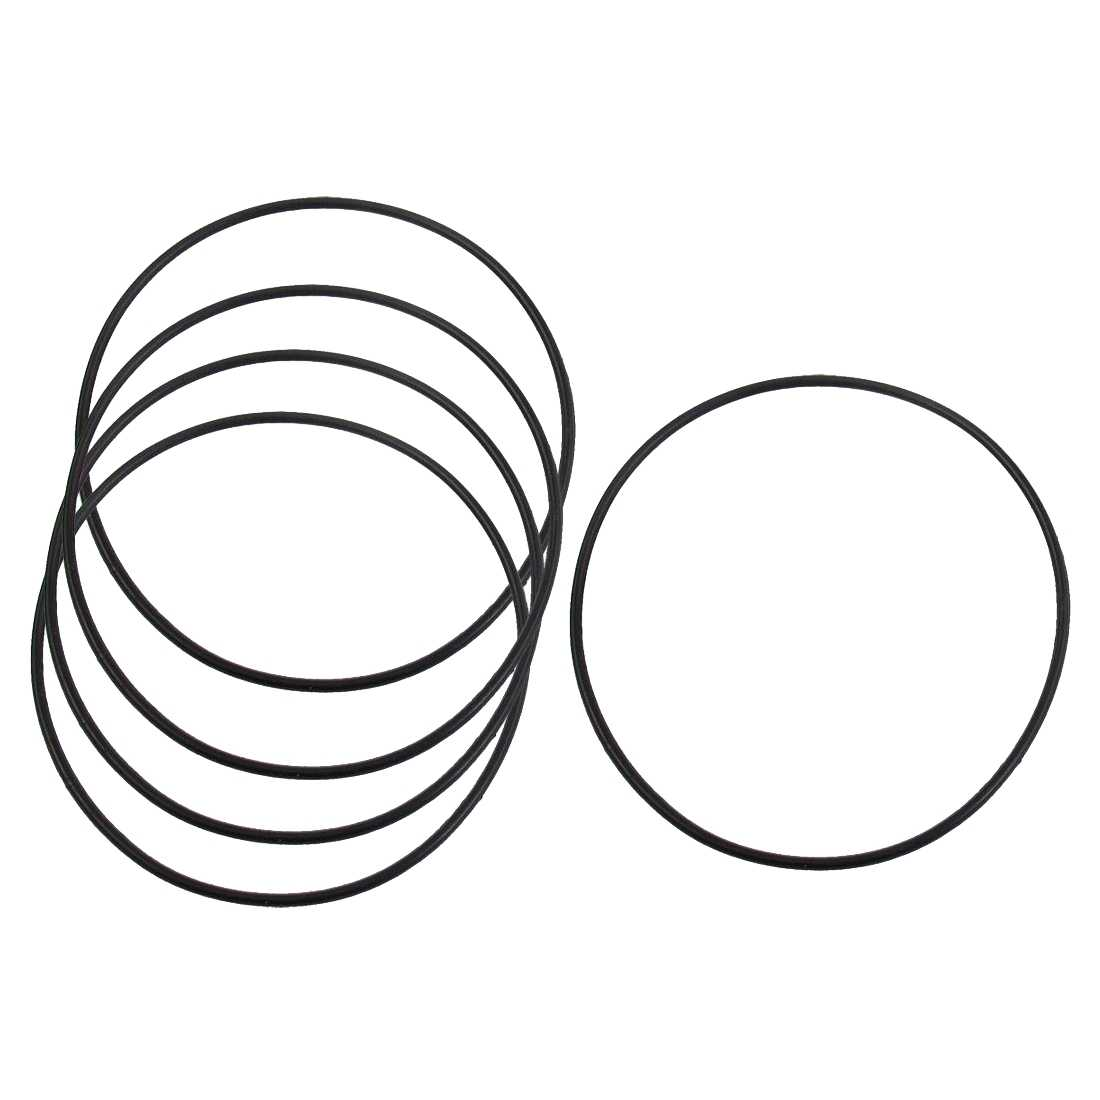 O-ring / seal ring made of rubber, 80 x 2 mm, for oil filter, 5 pieces